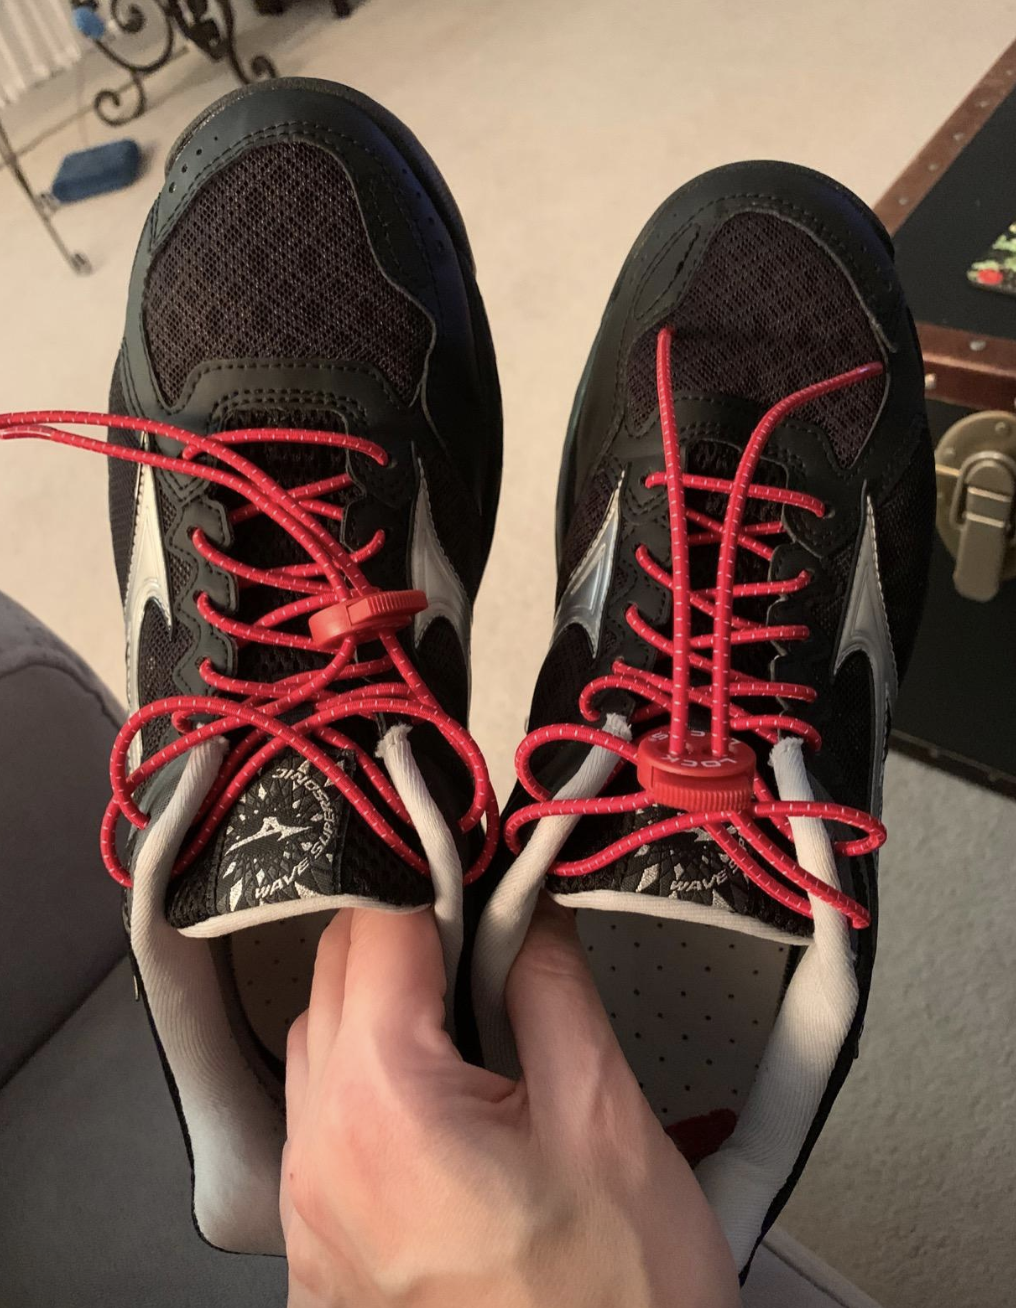 grey sneakers with the no-tie shoelaces in pink